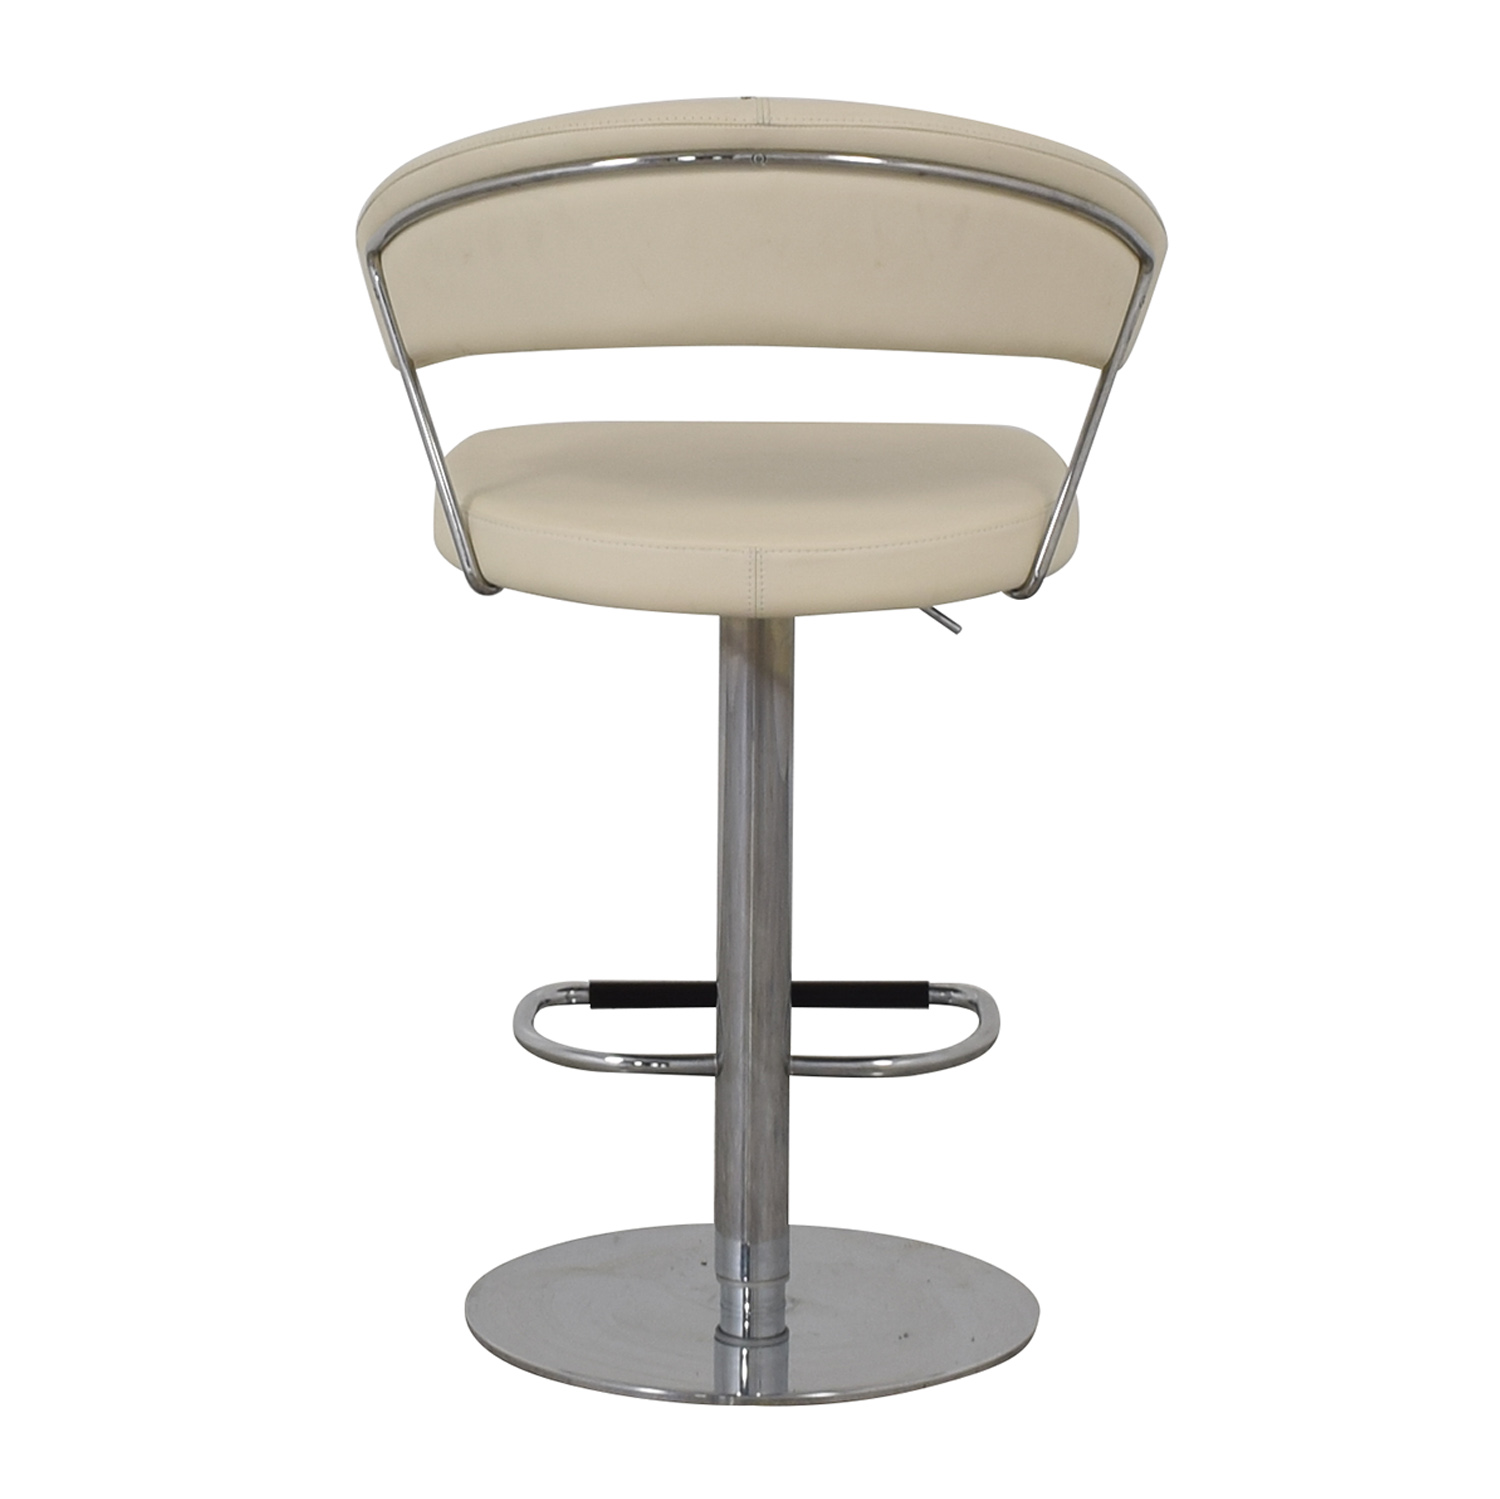 Calligaris Calligaris New York Adjustable Stool second hand